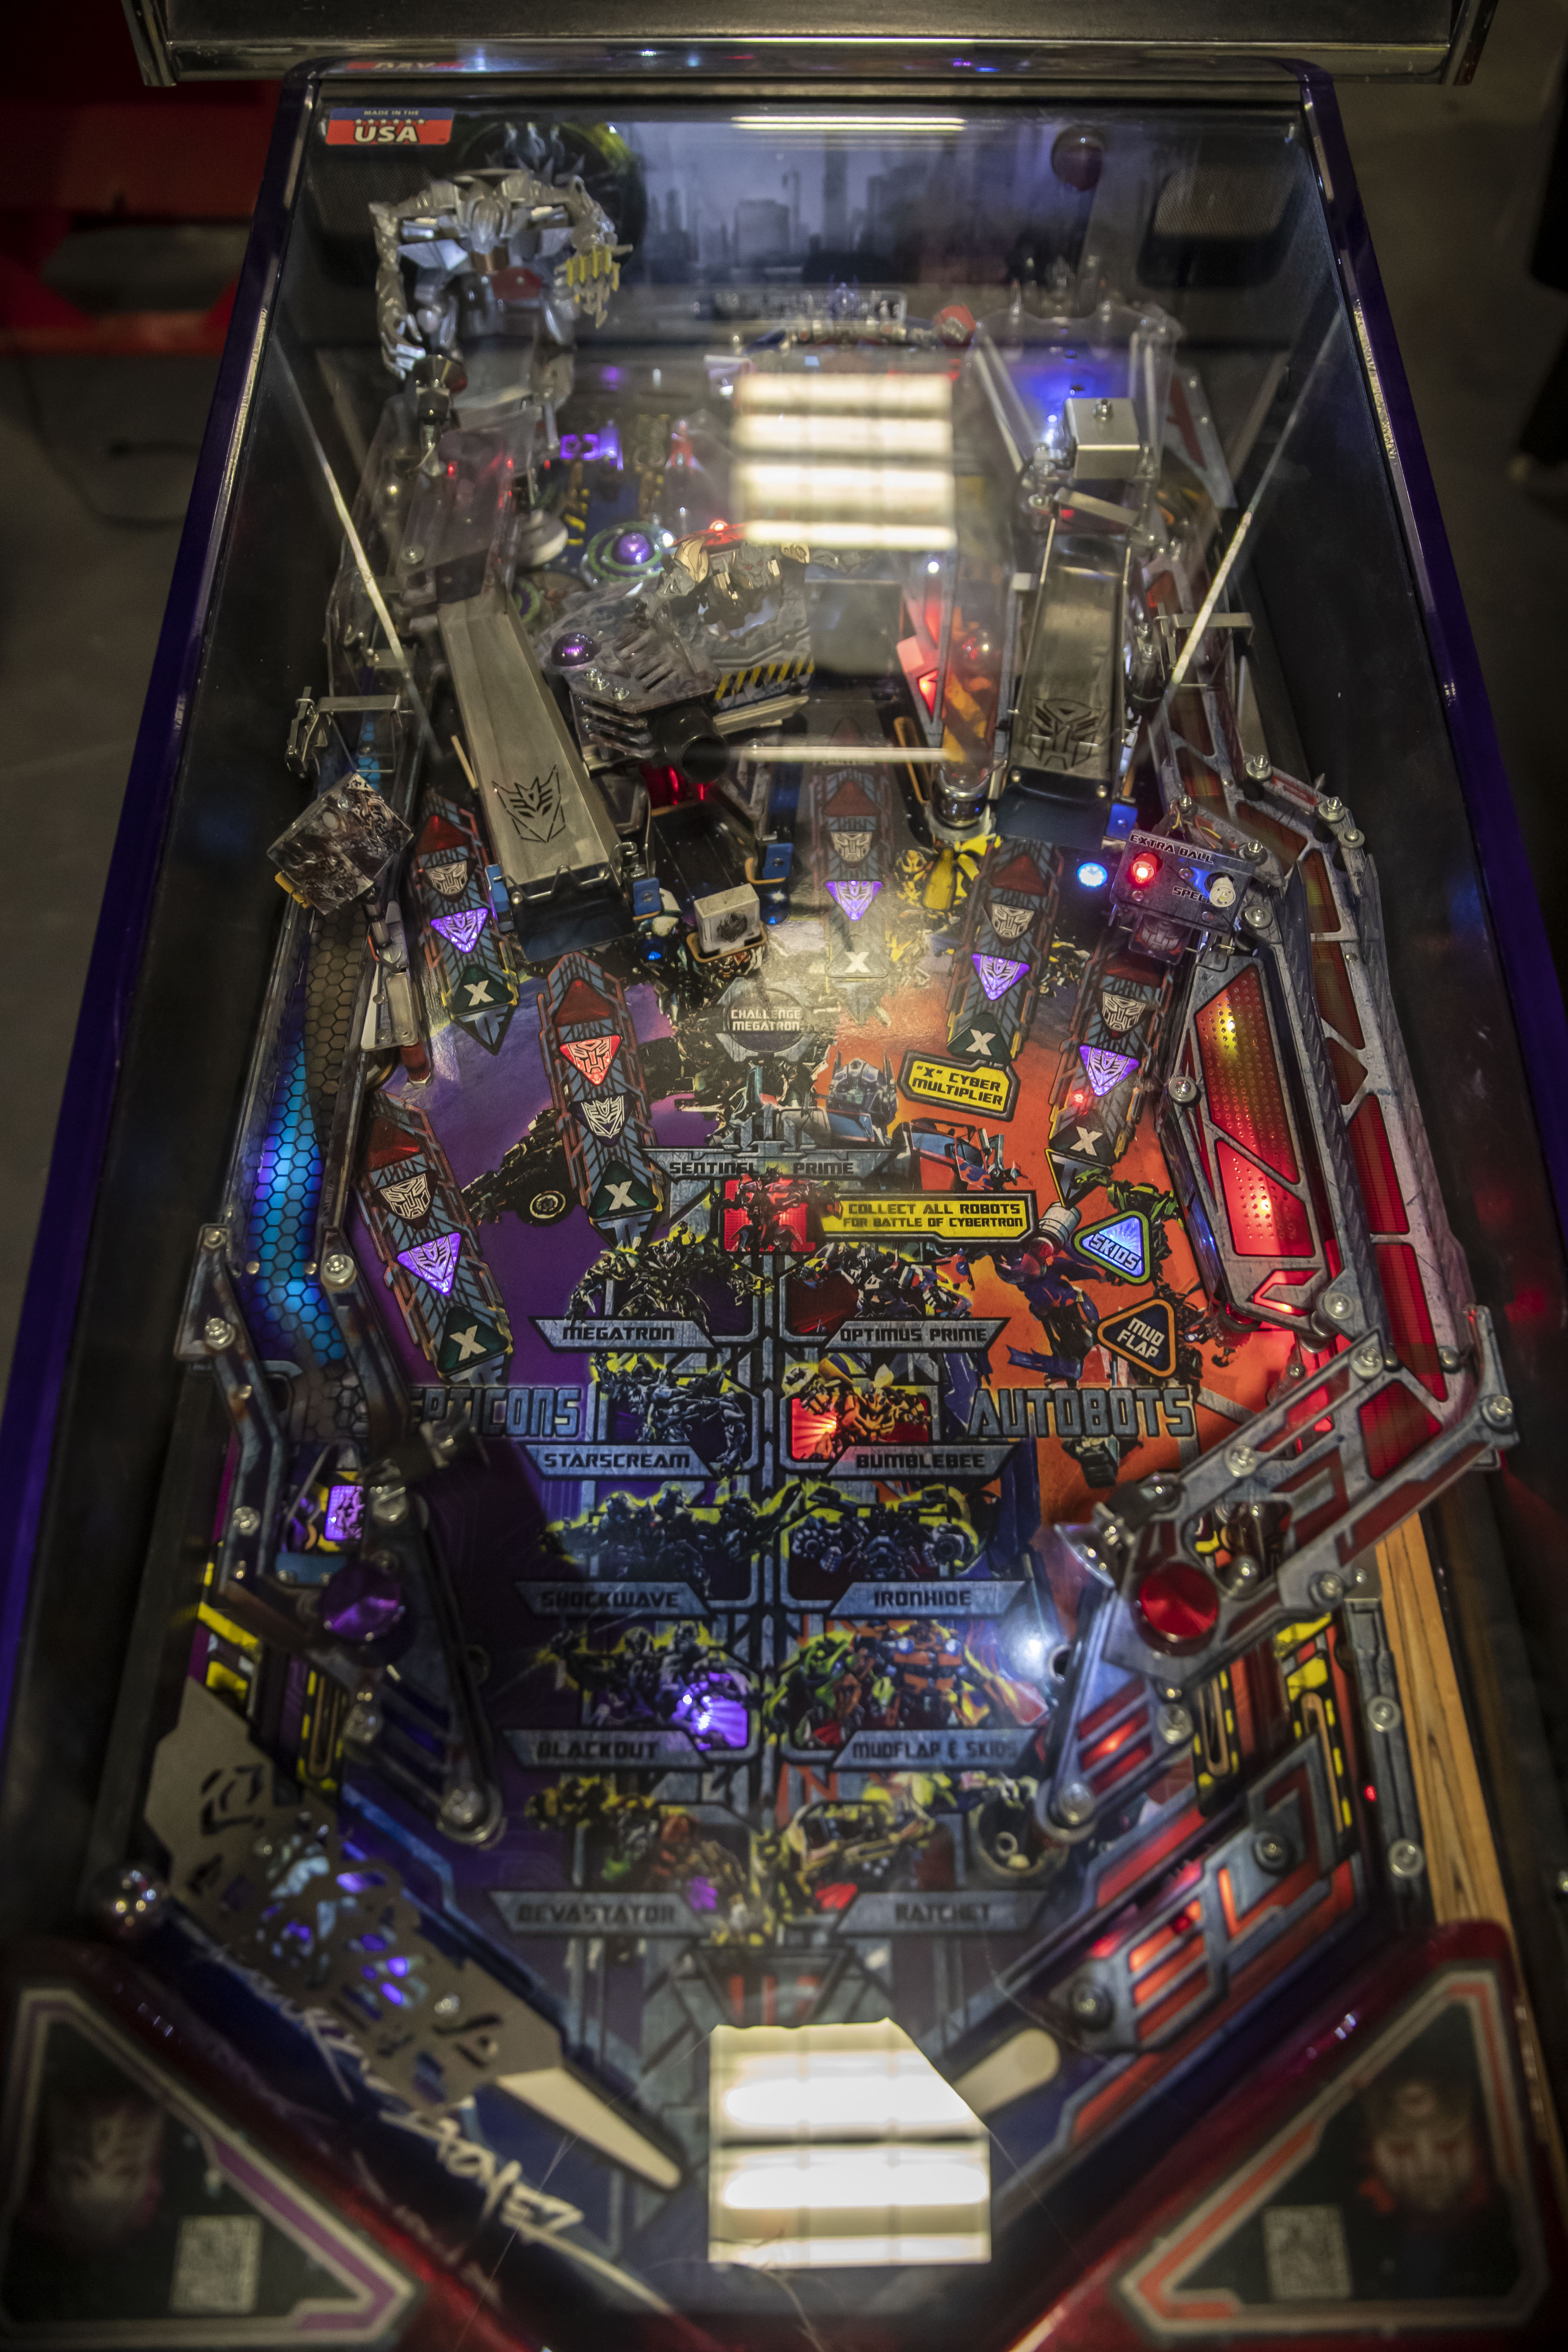 Lot 153 - Stern Transformer Limited Edition Pinball #55 - Functional but sound not working. Used.